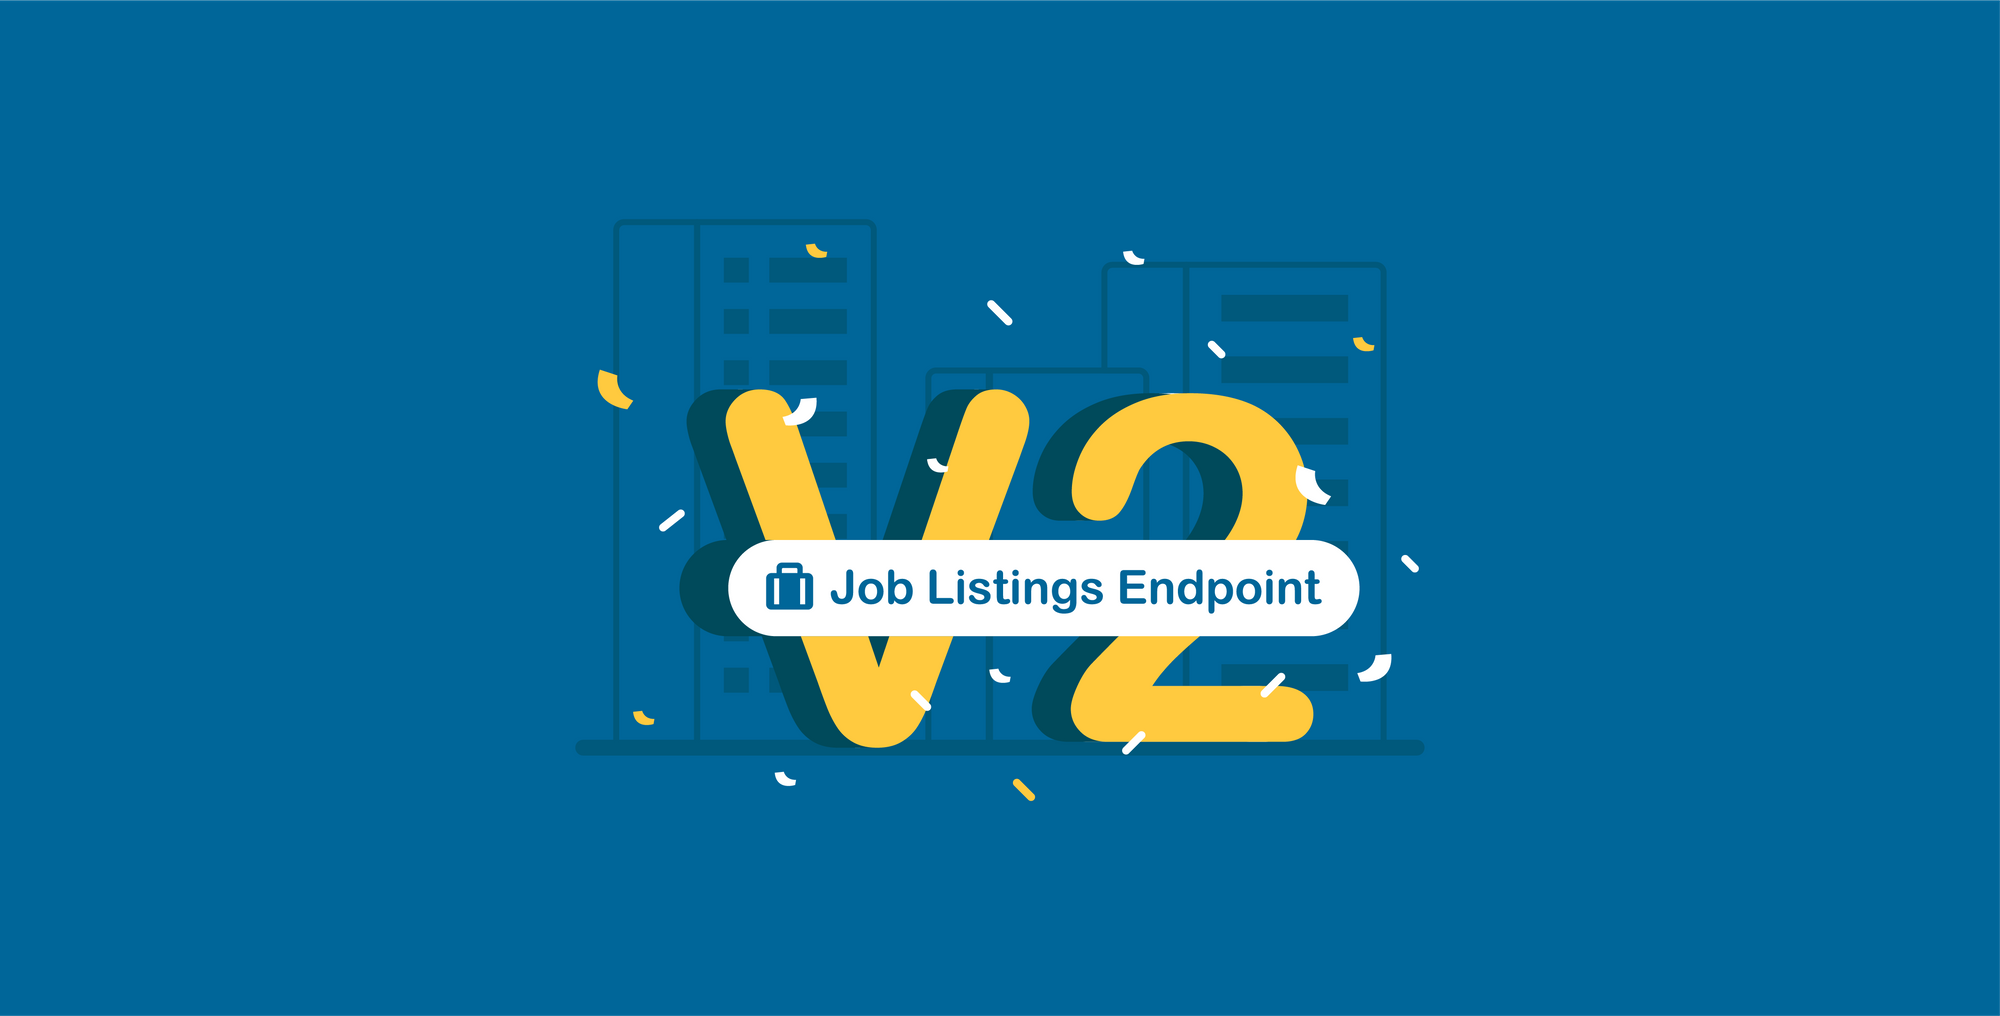 Introducing V2 of Job Listings Endpoint